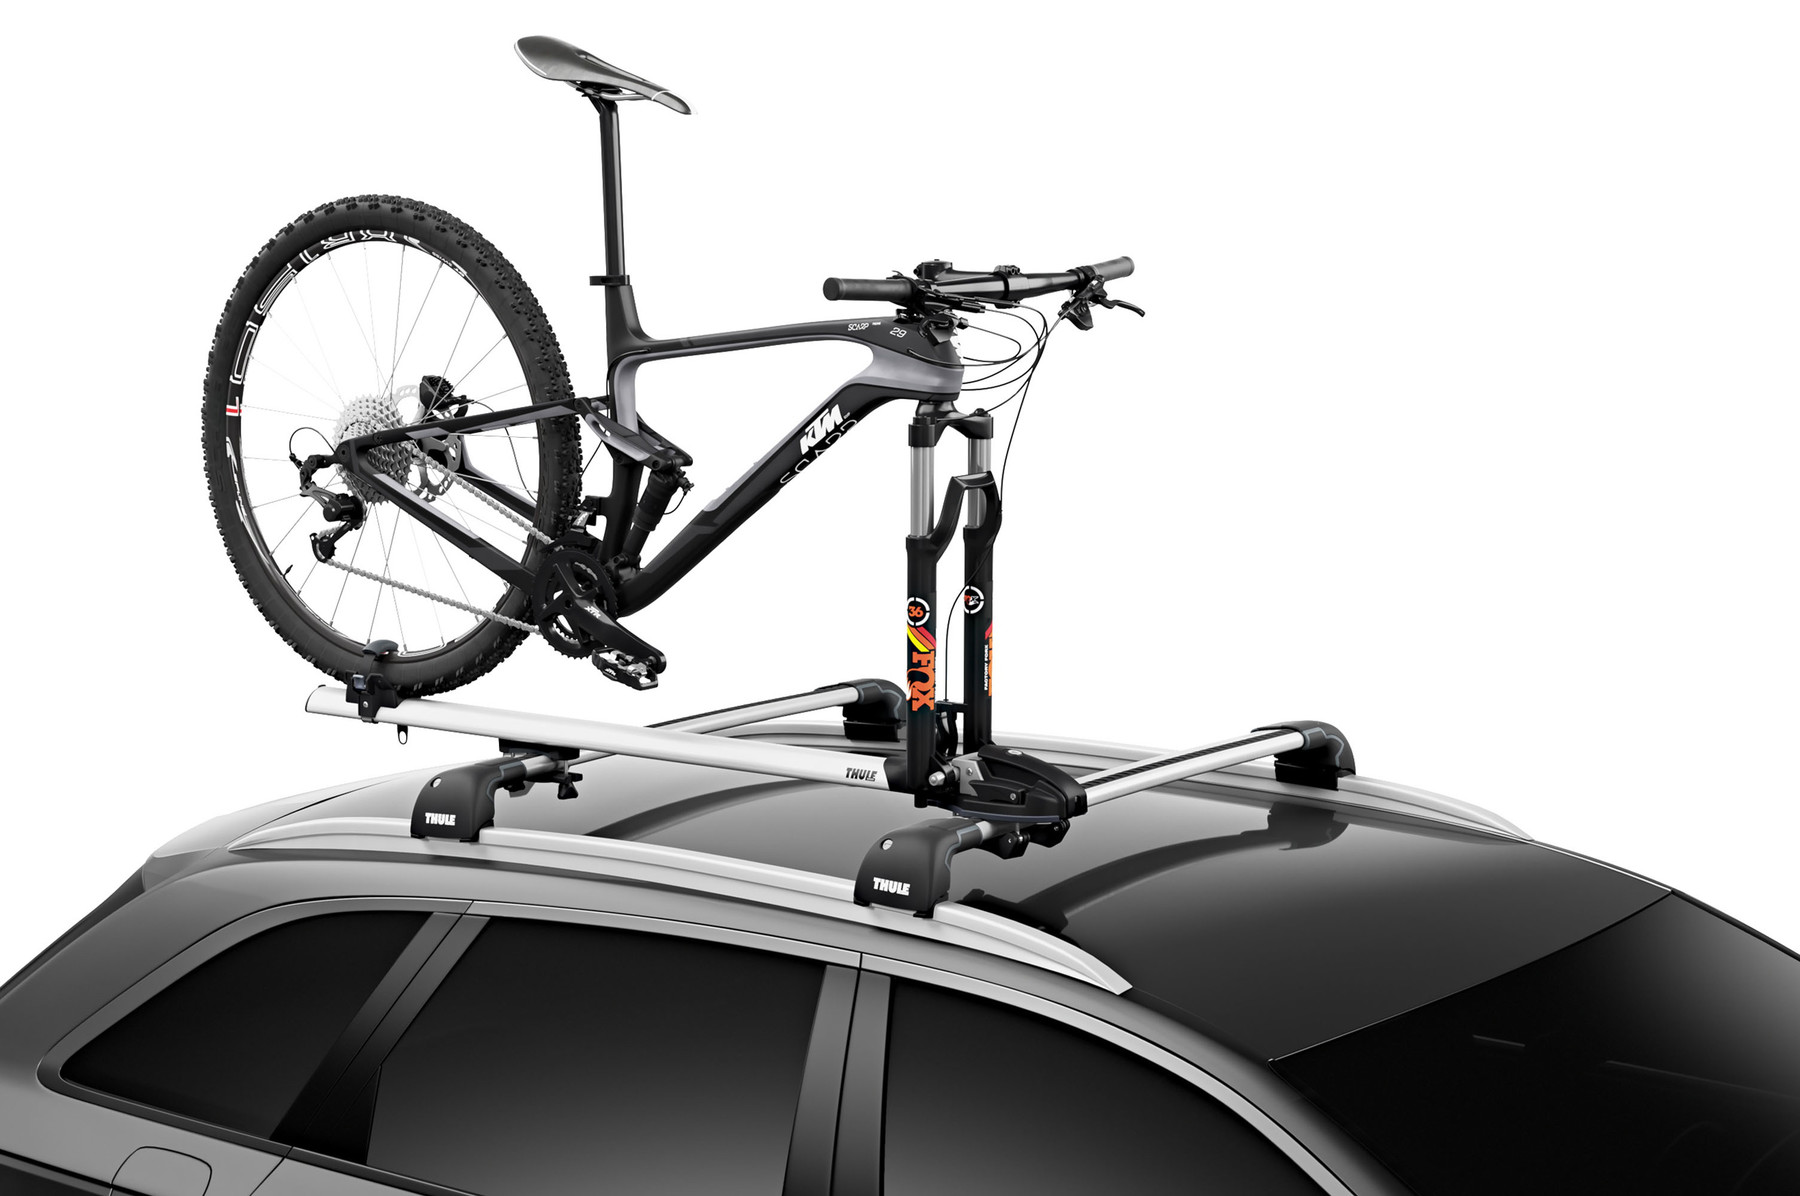 Thule Roof Rack 4 Bikes 12 300 About Roof